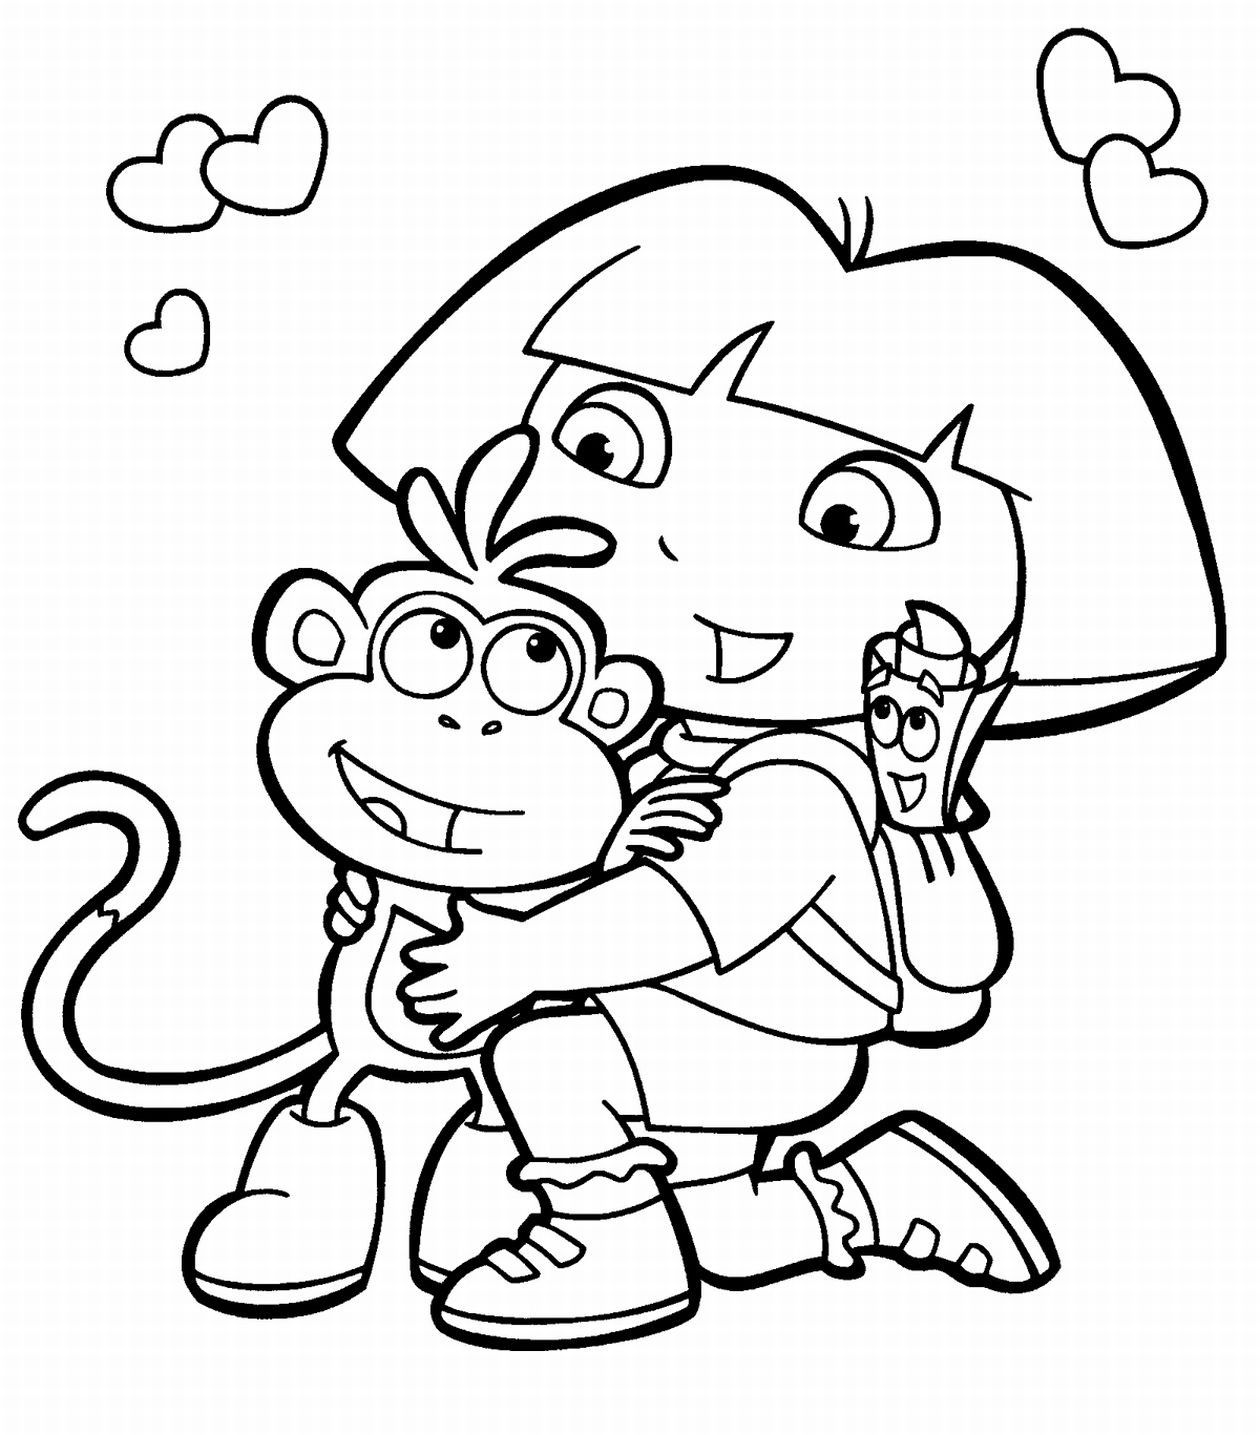 free kids printable coloring pages httpfreecoloringpageinfofree - Free Coloring Pictures